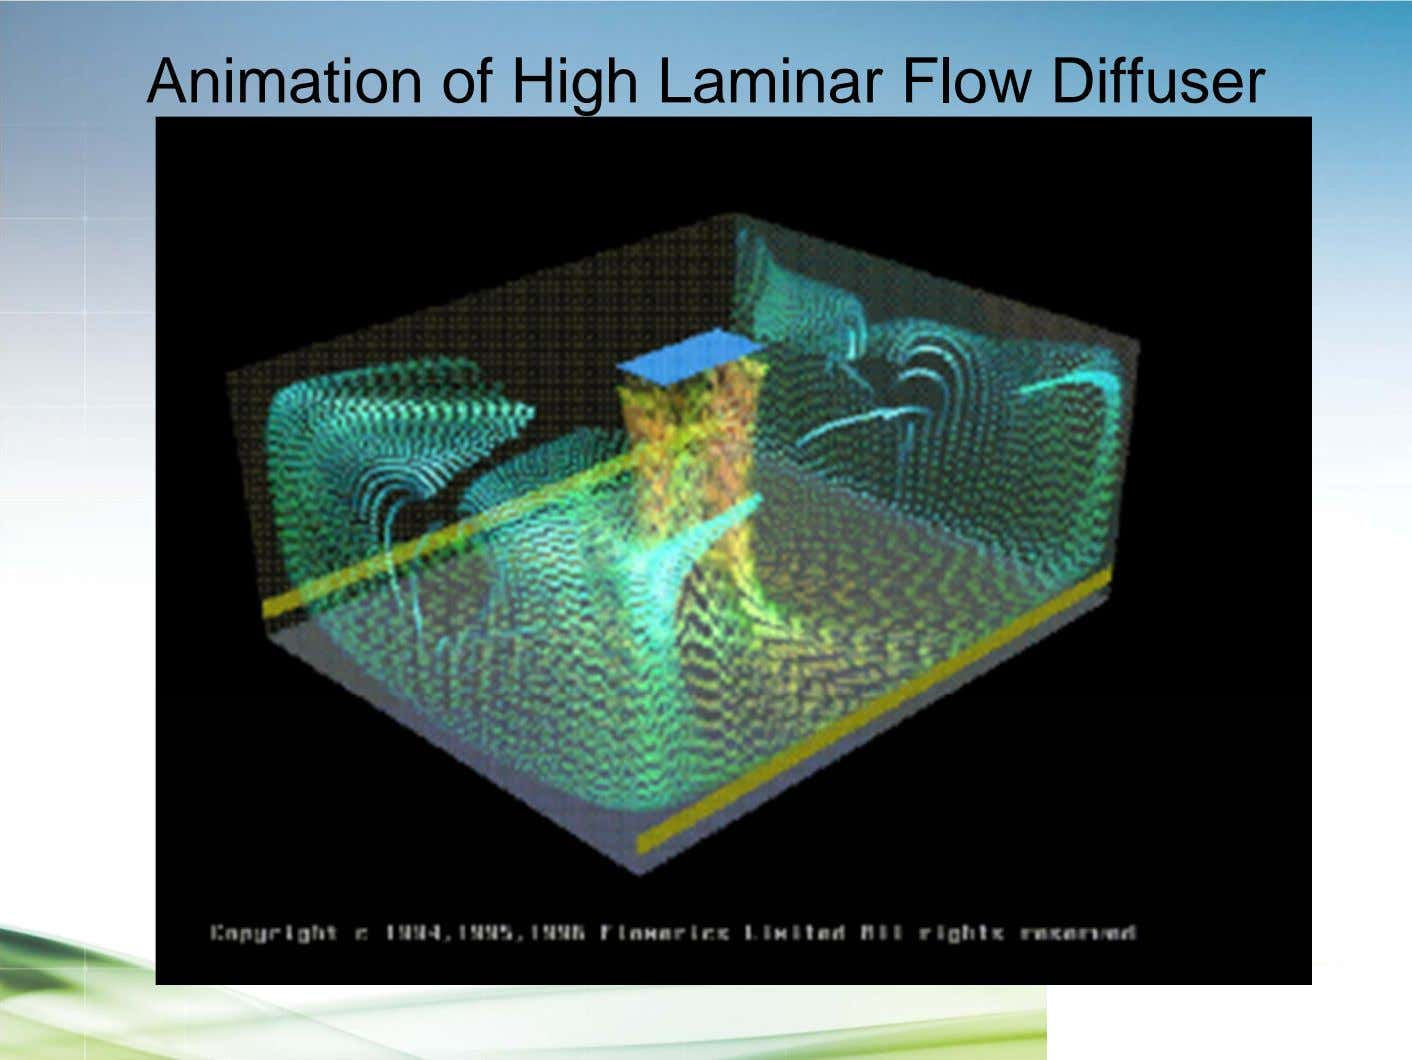 Animation of High Laminar Flow Diffuser